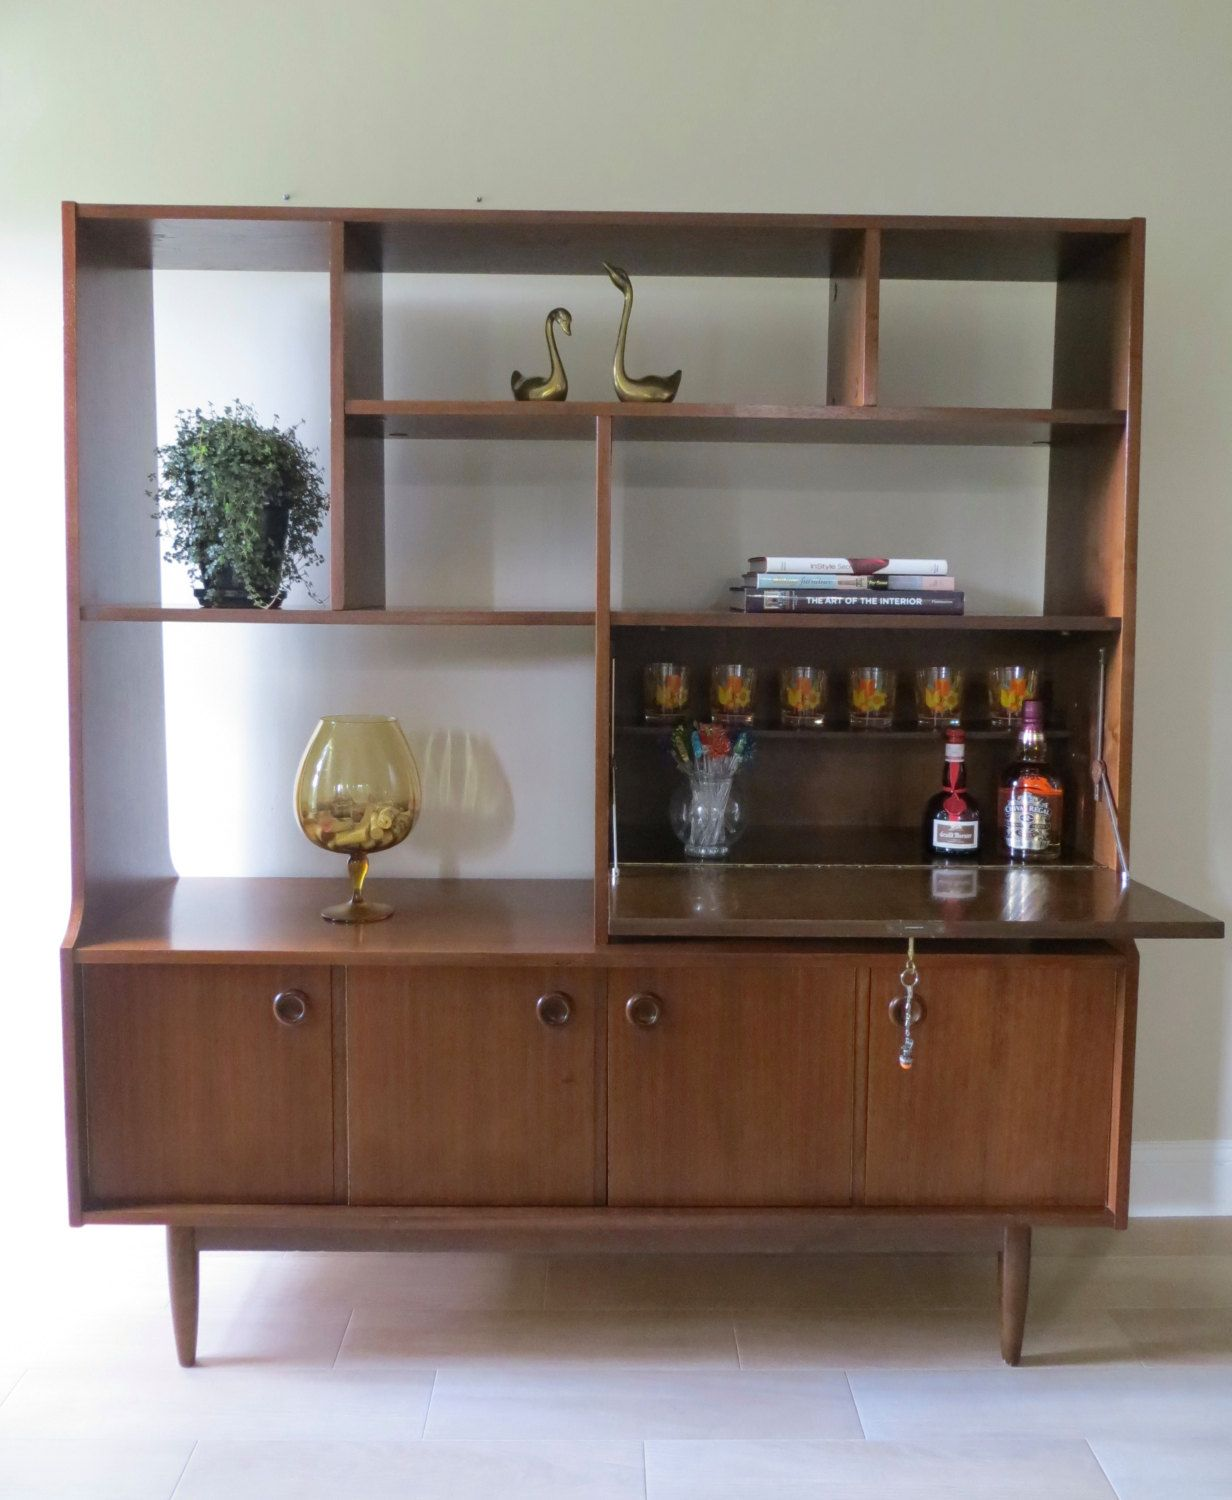 Mid Century Modern Wall Unit Room Divider Secretary Cabinet Drop Leaf Desk Or Bar Compartment Bookshelf Bookcase 1150 00 Usd By